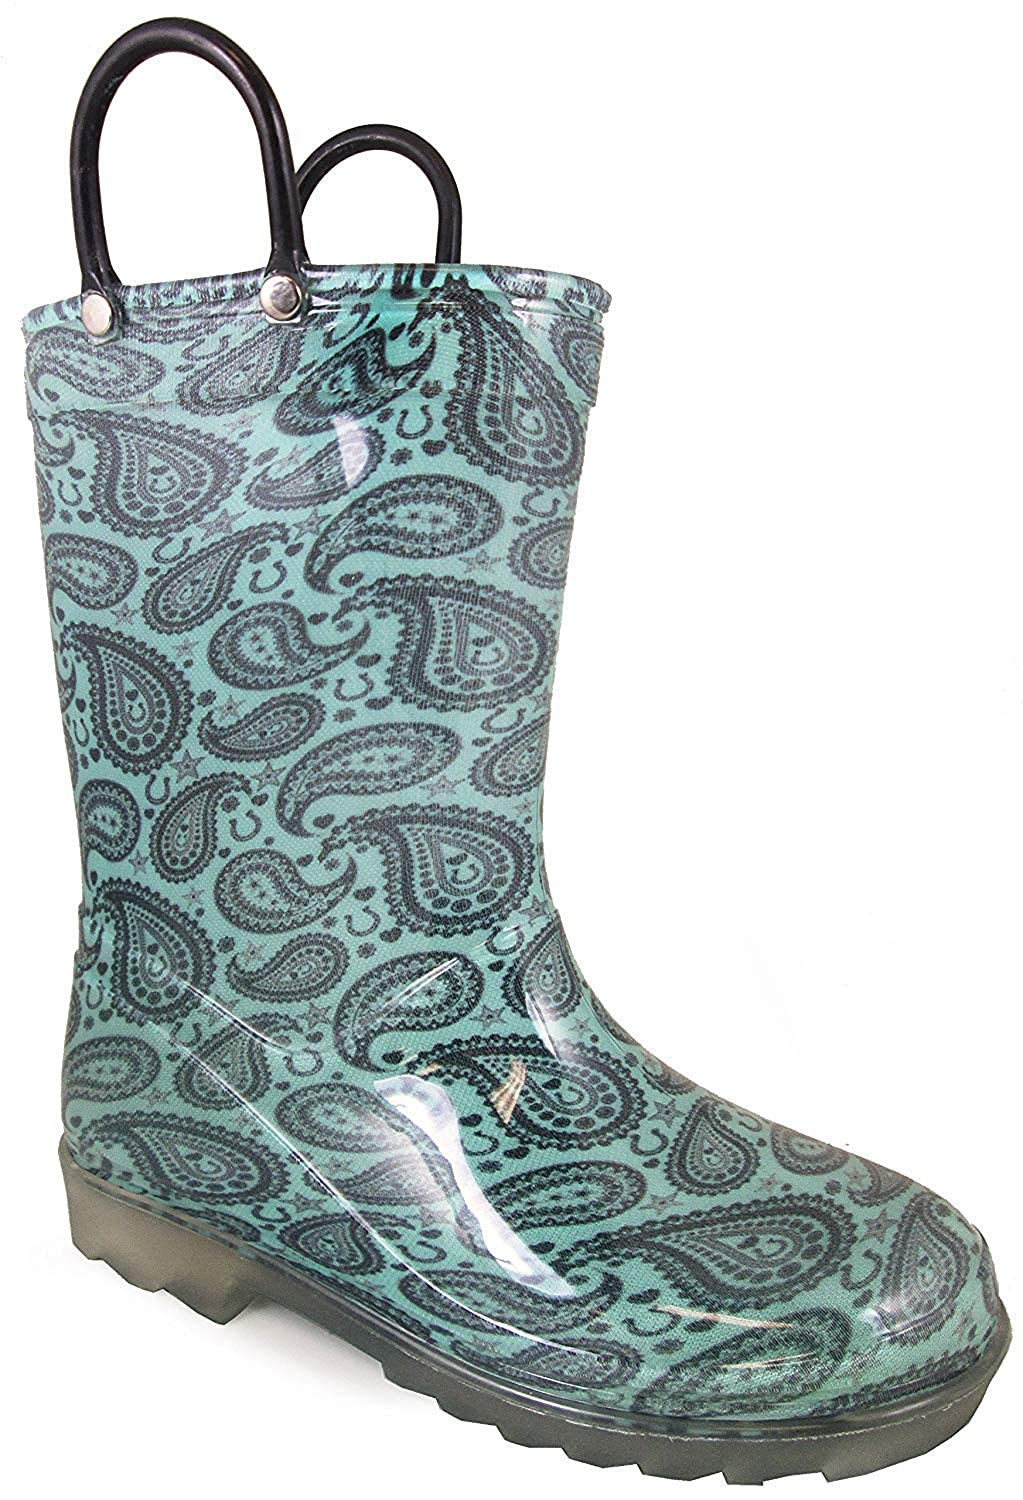 [Smoky Mountain Boots] ユニセックス?キッズ